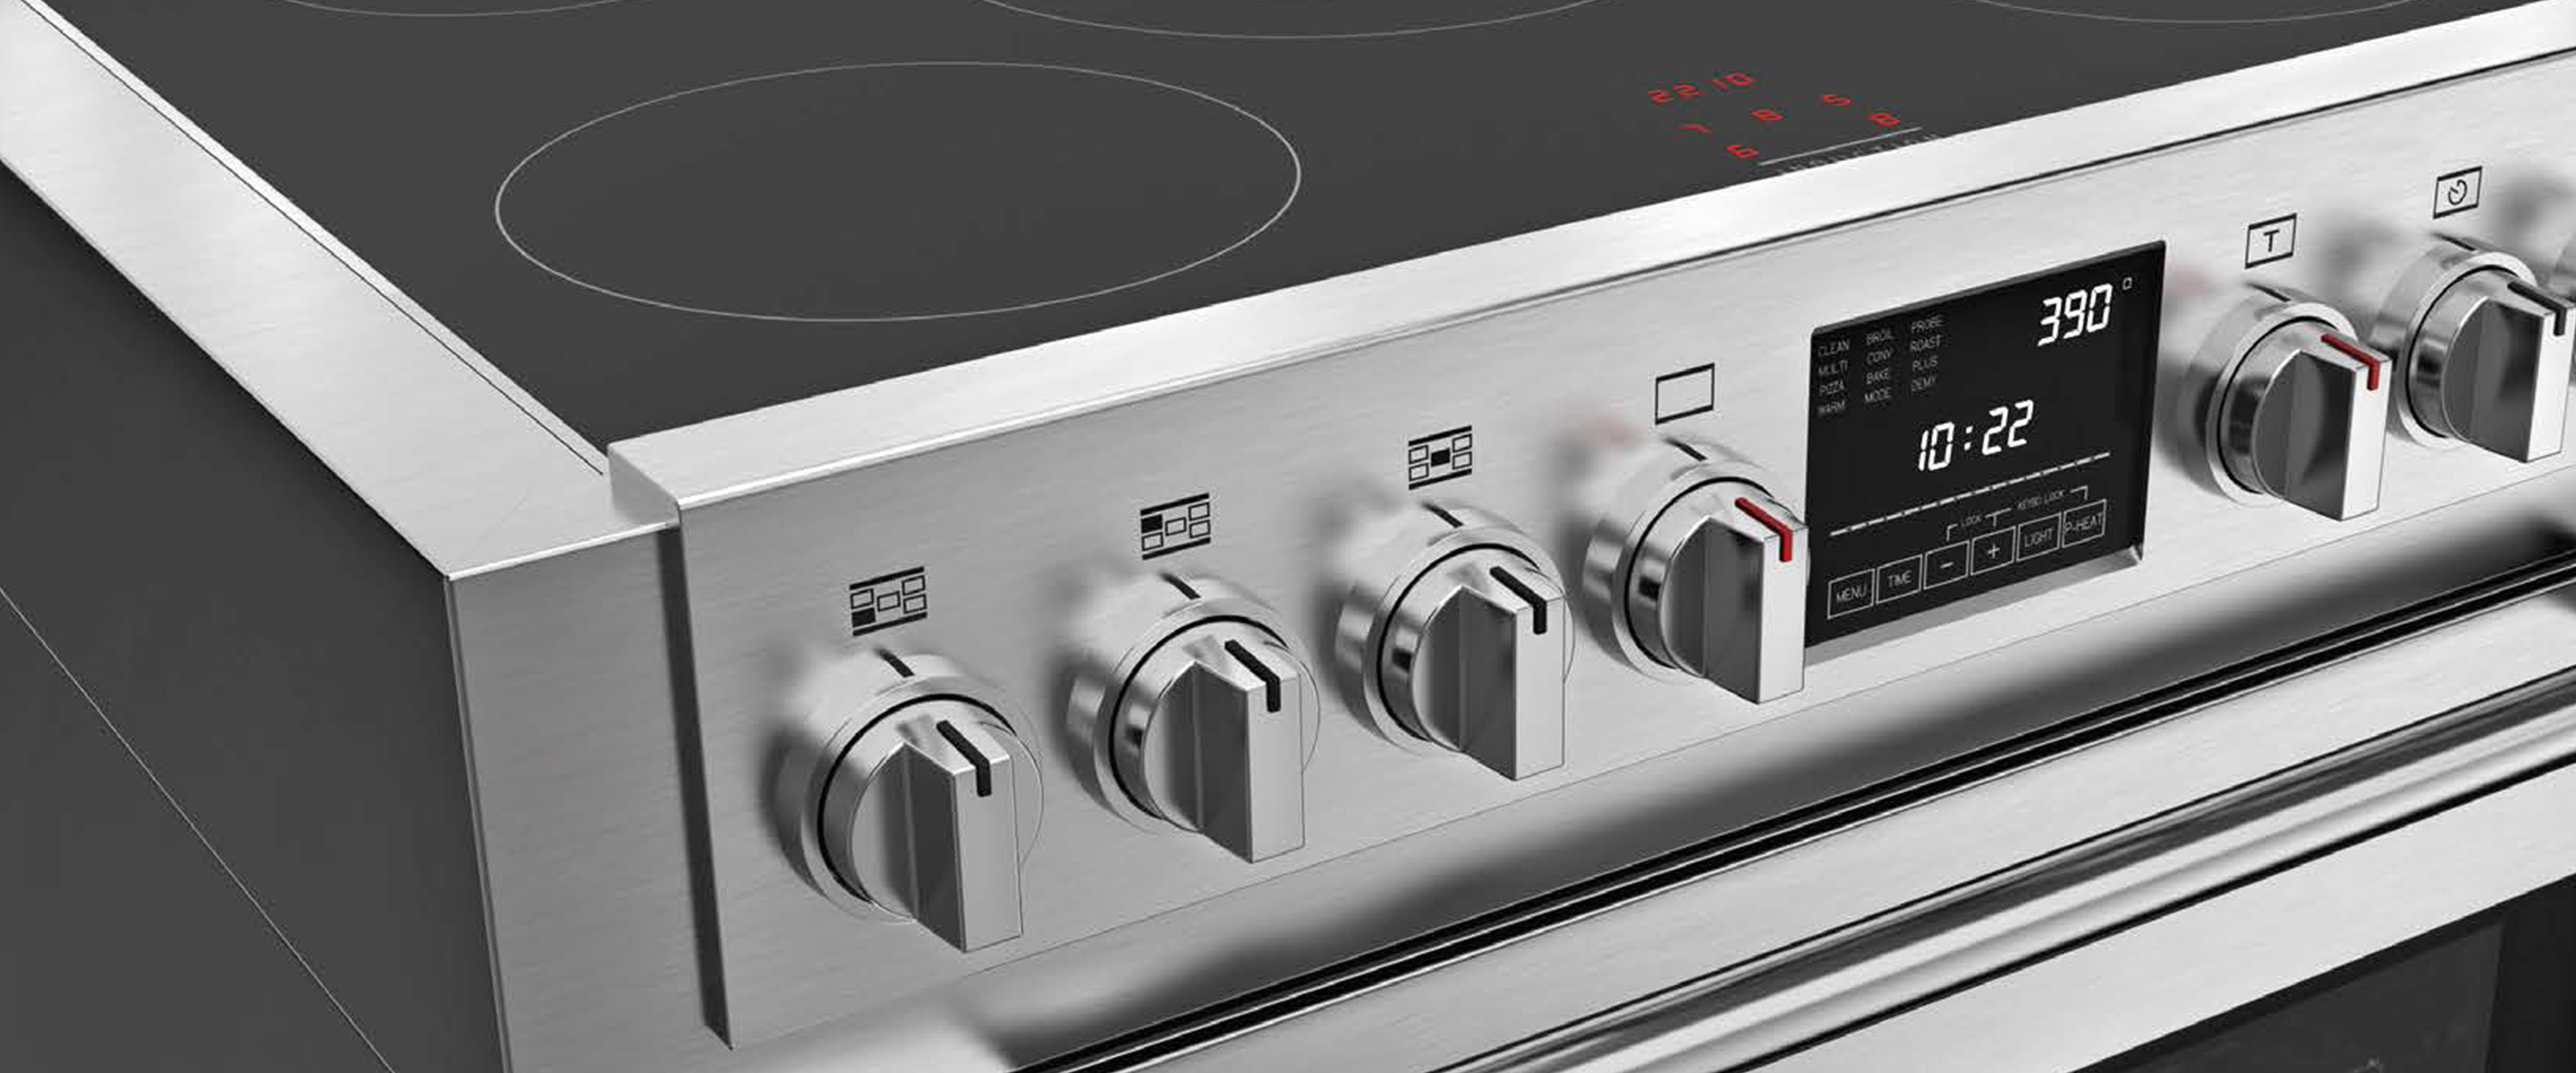 Stove top our values png